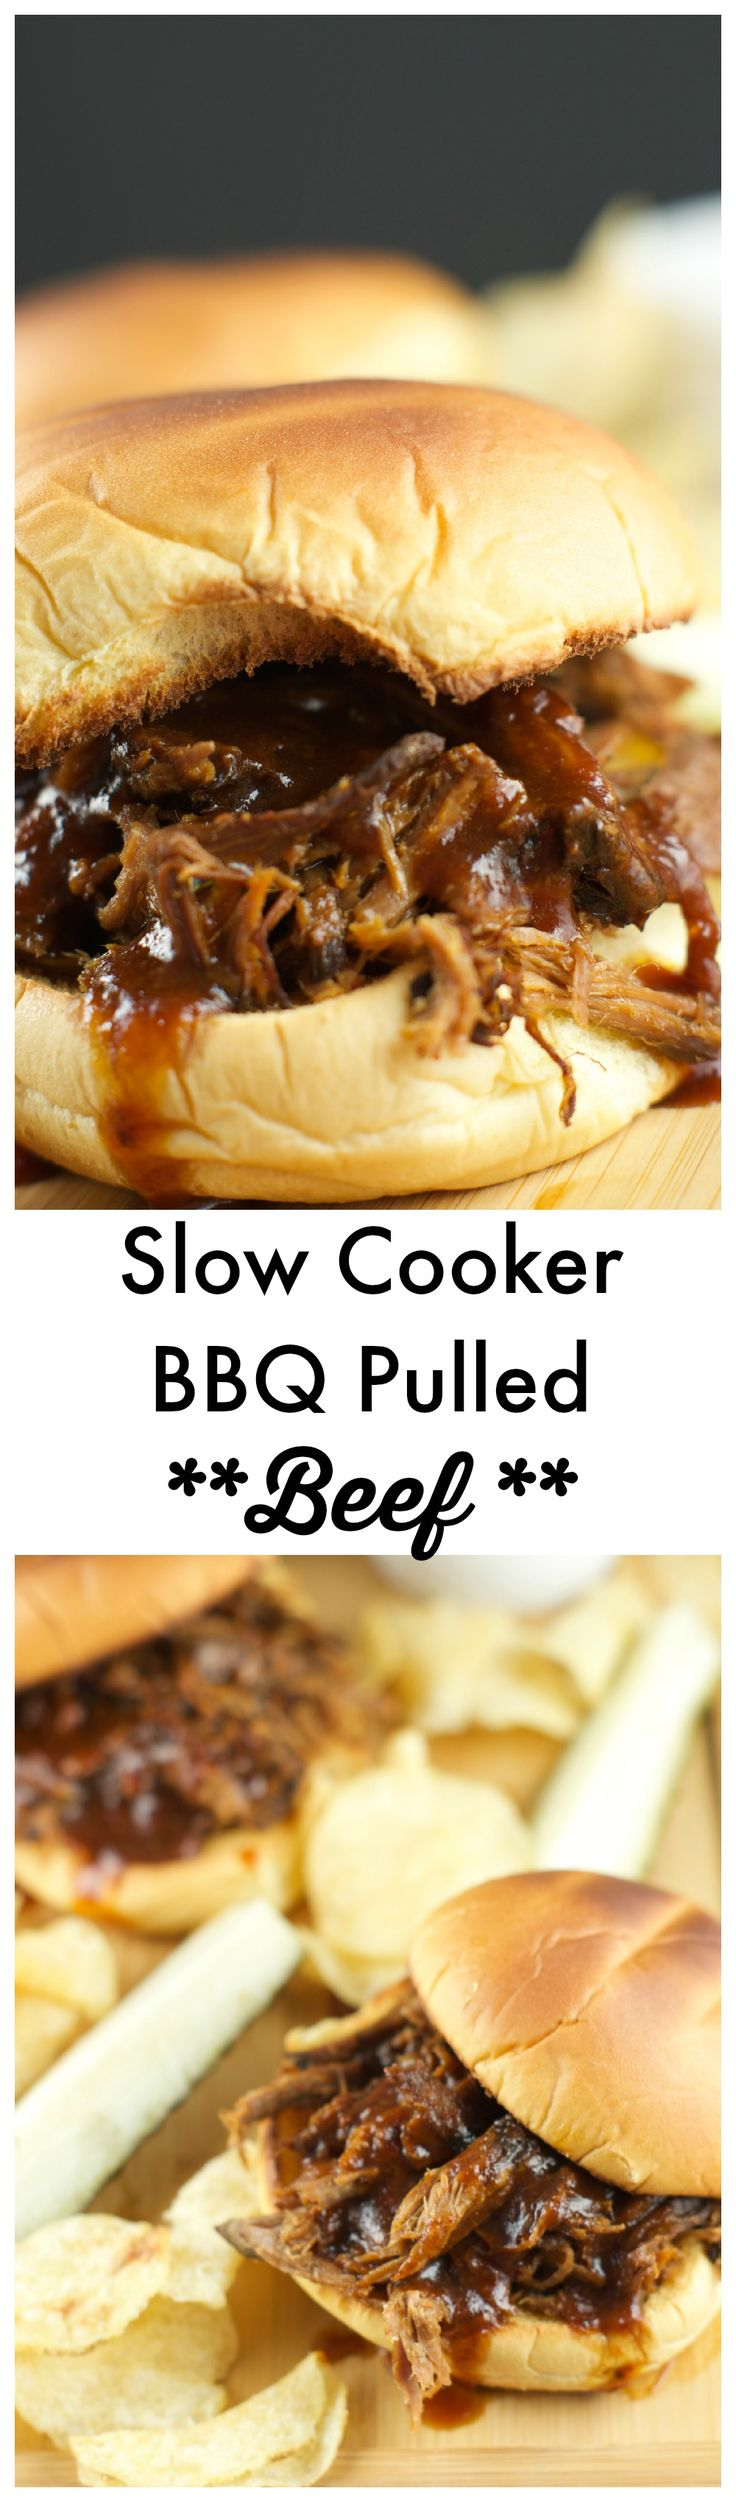 Slow Cooker Pulled BBQ Beef Sandwiches: delicious and tender beef slow cooked in a homemade BBQ sauce served on a toasted